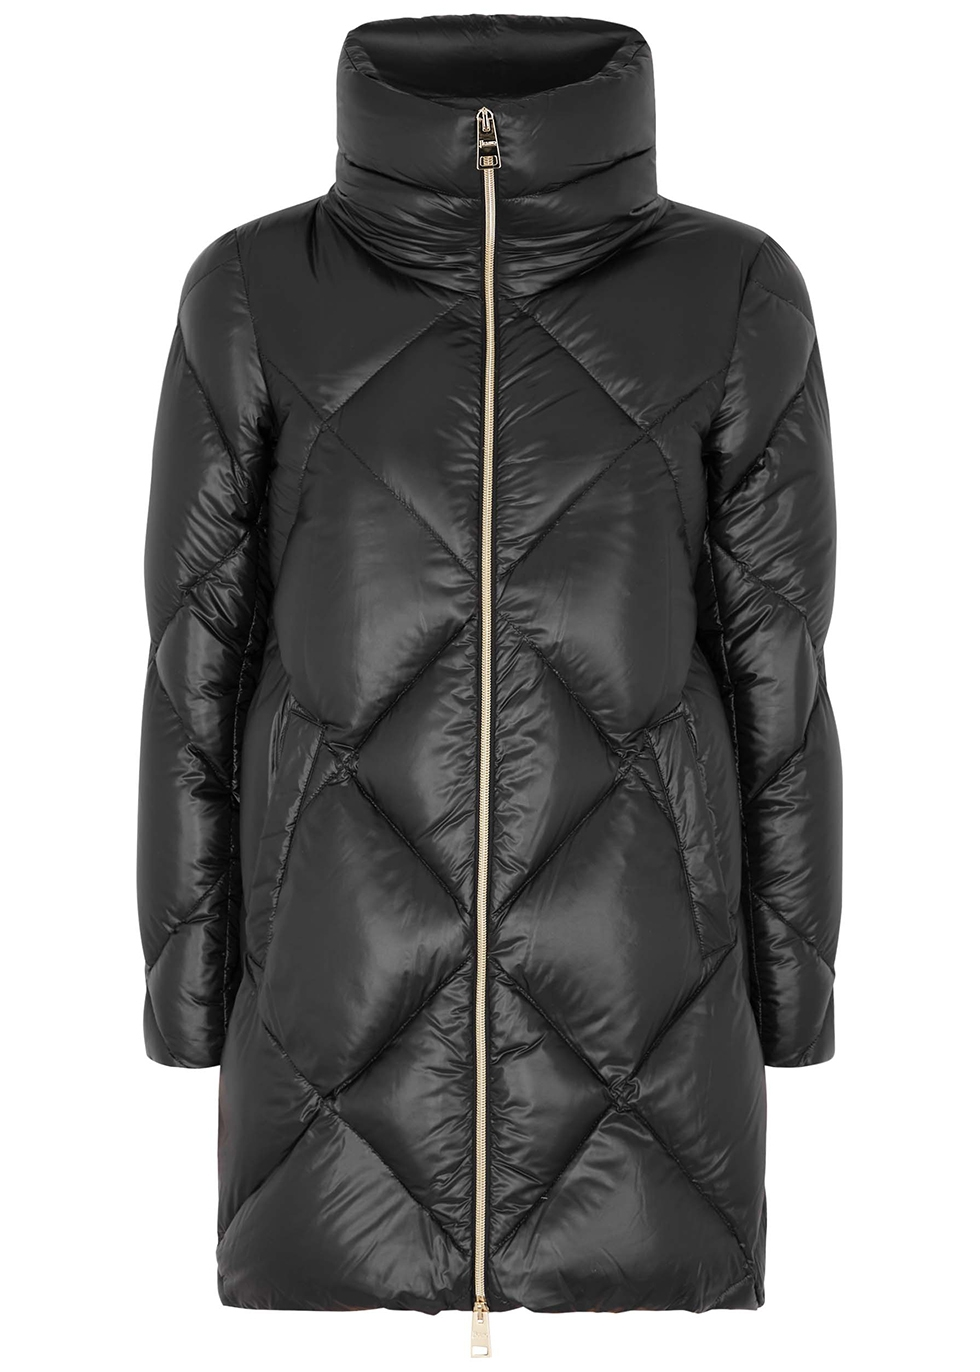 Ultralite black quilted shell coat